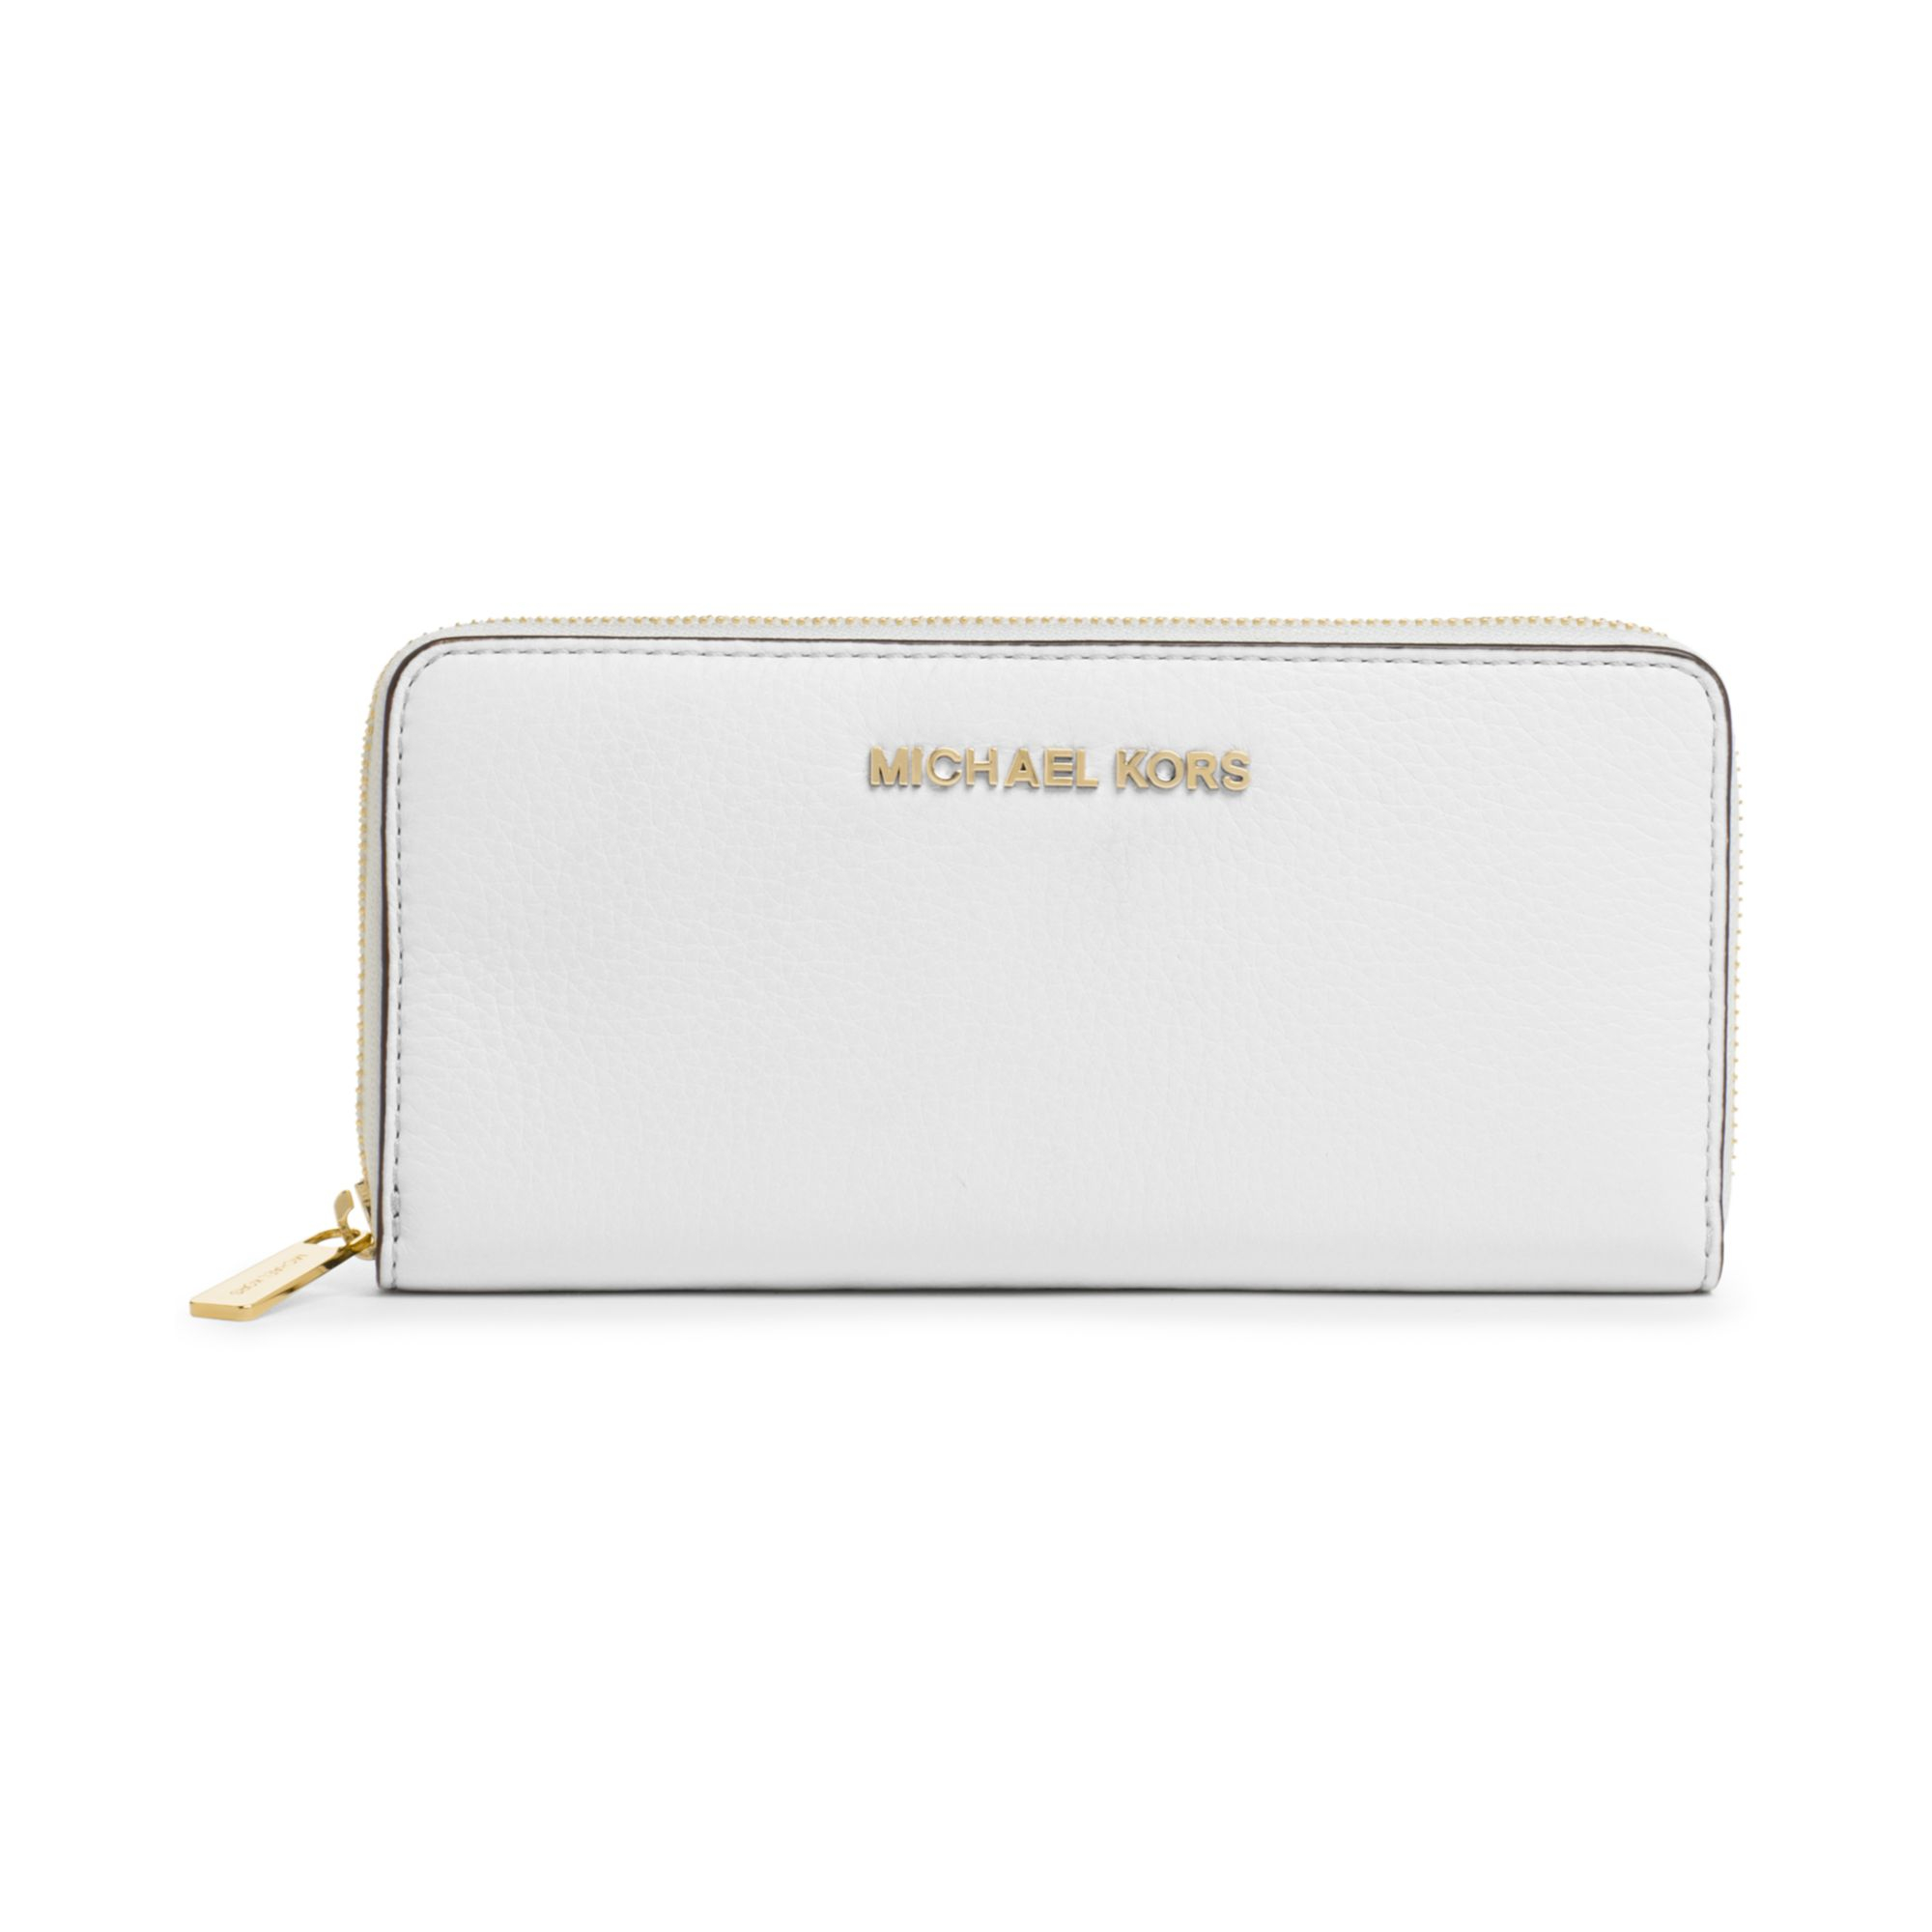 752edecaa387 Michael Kors Bedford Continental Wallet in White - Lyst